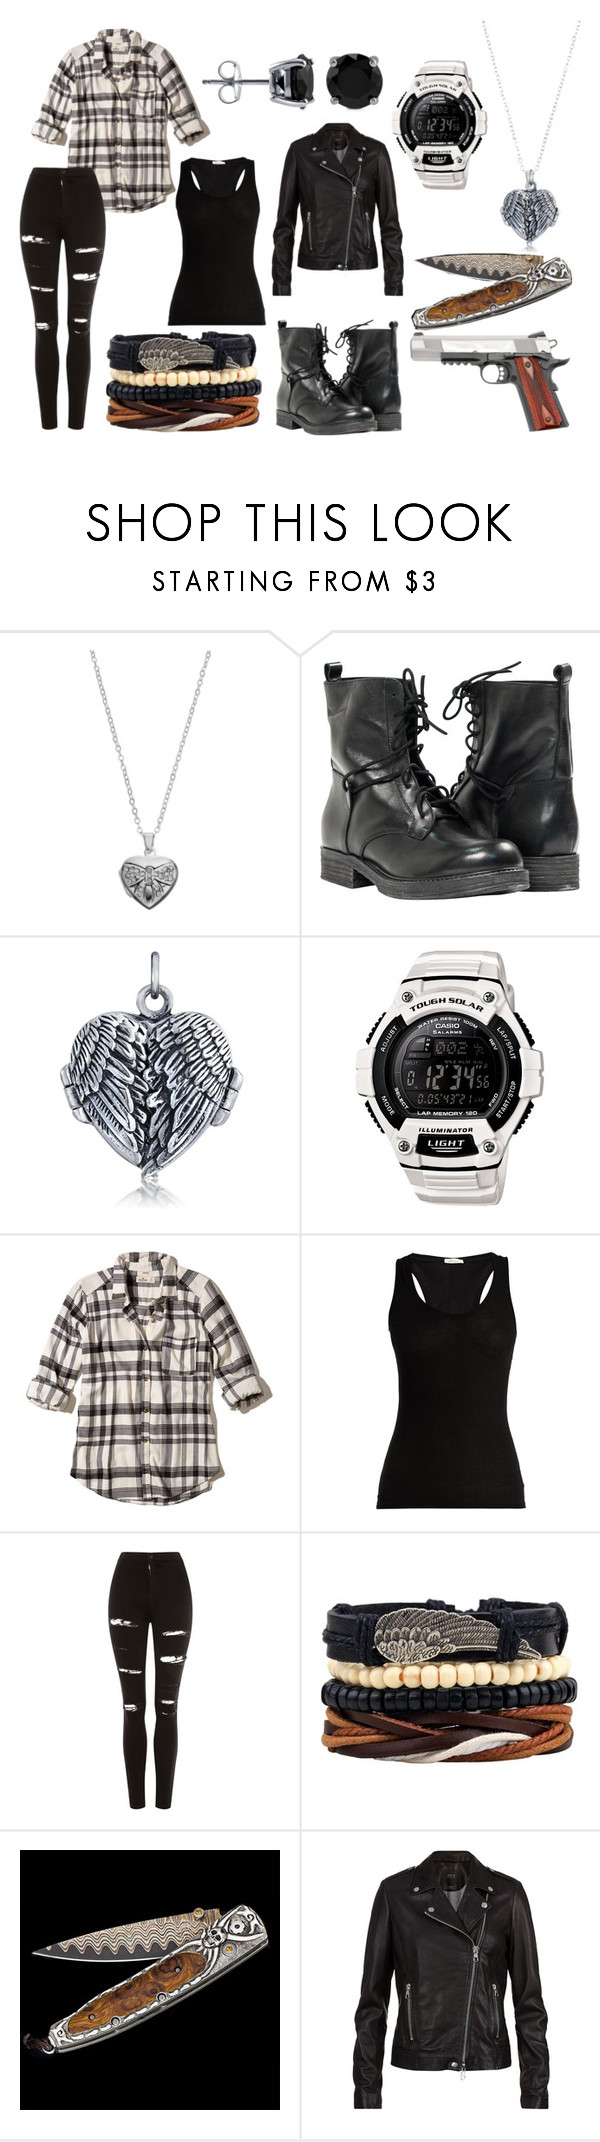 outfitz  by iicatisnotademonii on Polyvore featuring Silver      outfitz  by iicatisnotademonii on Polyvore featuring Silver Expressions by  LArocks  Paolo Shoes